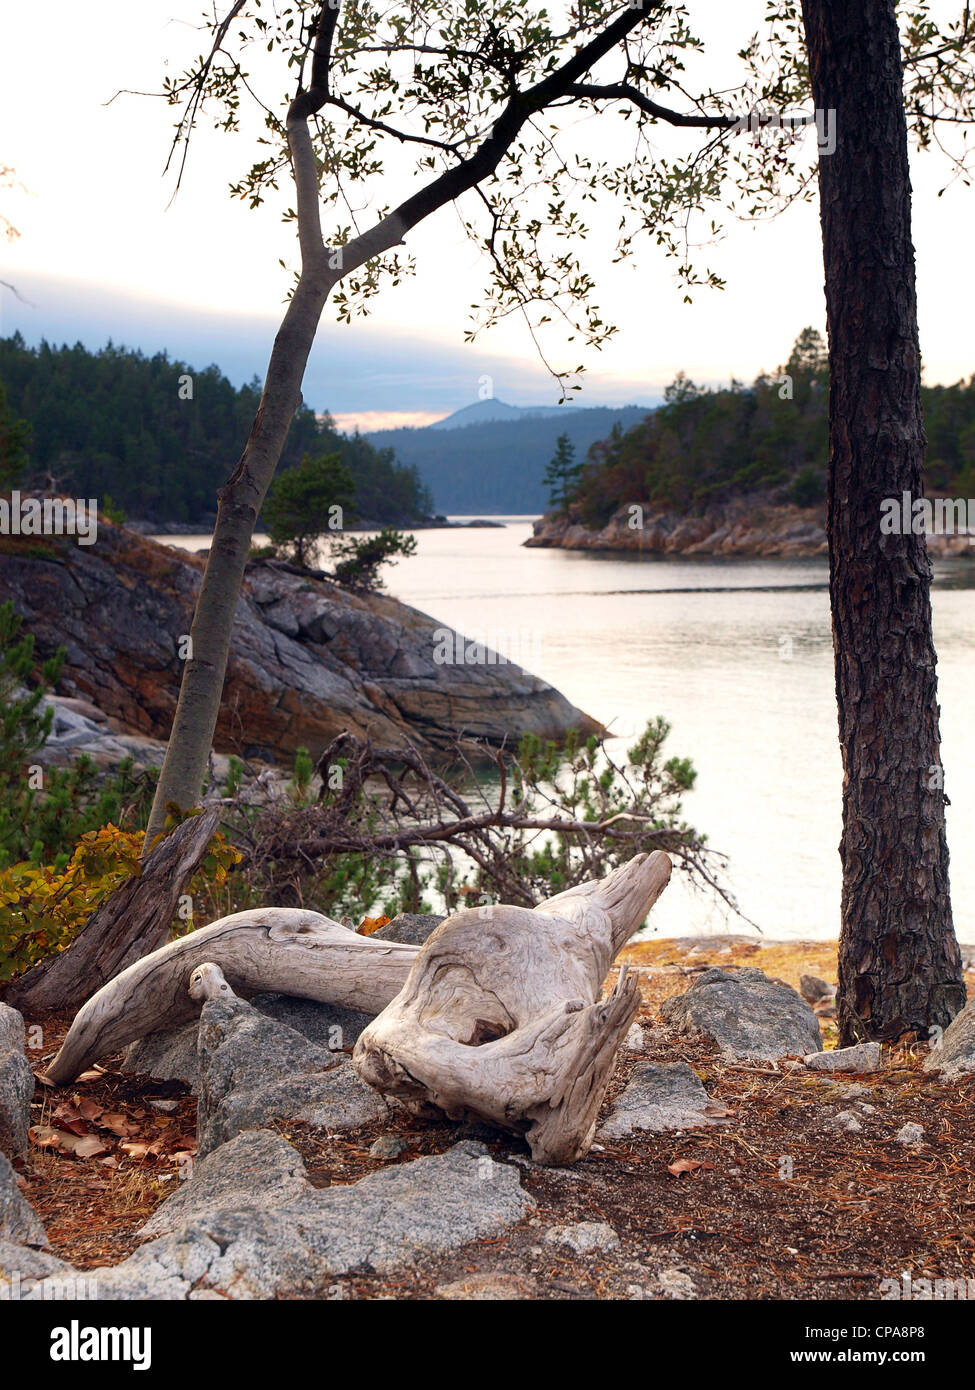 The Curme Islands in Desolation Sound, British Columbia - Stock Image